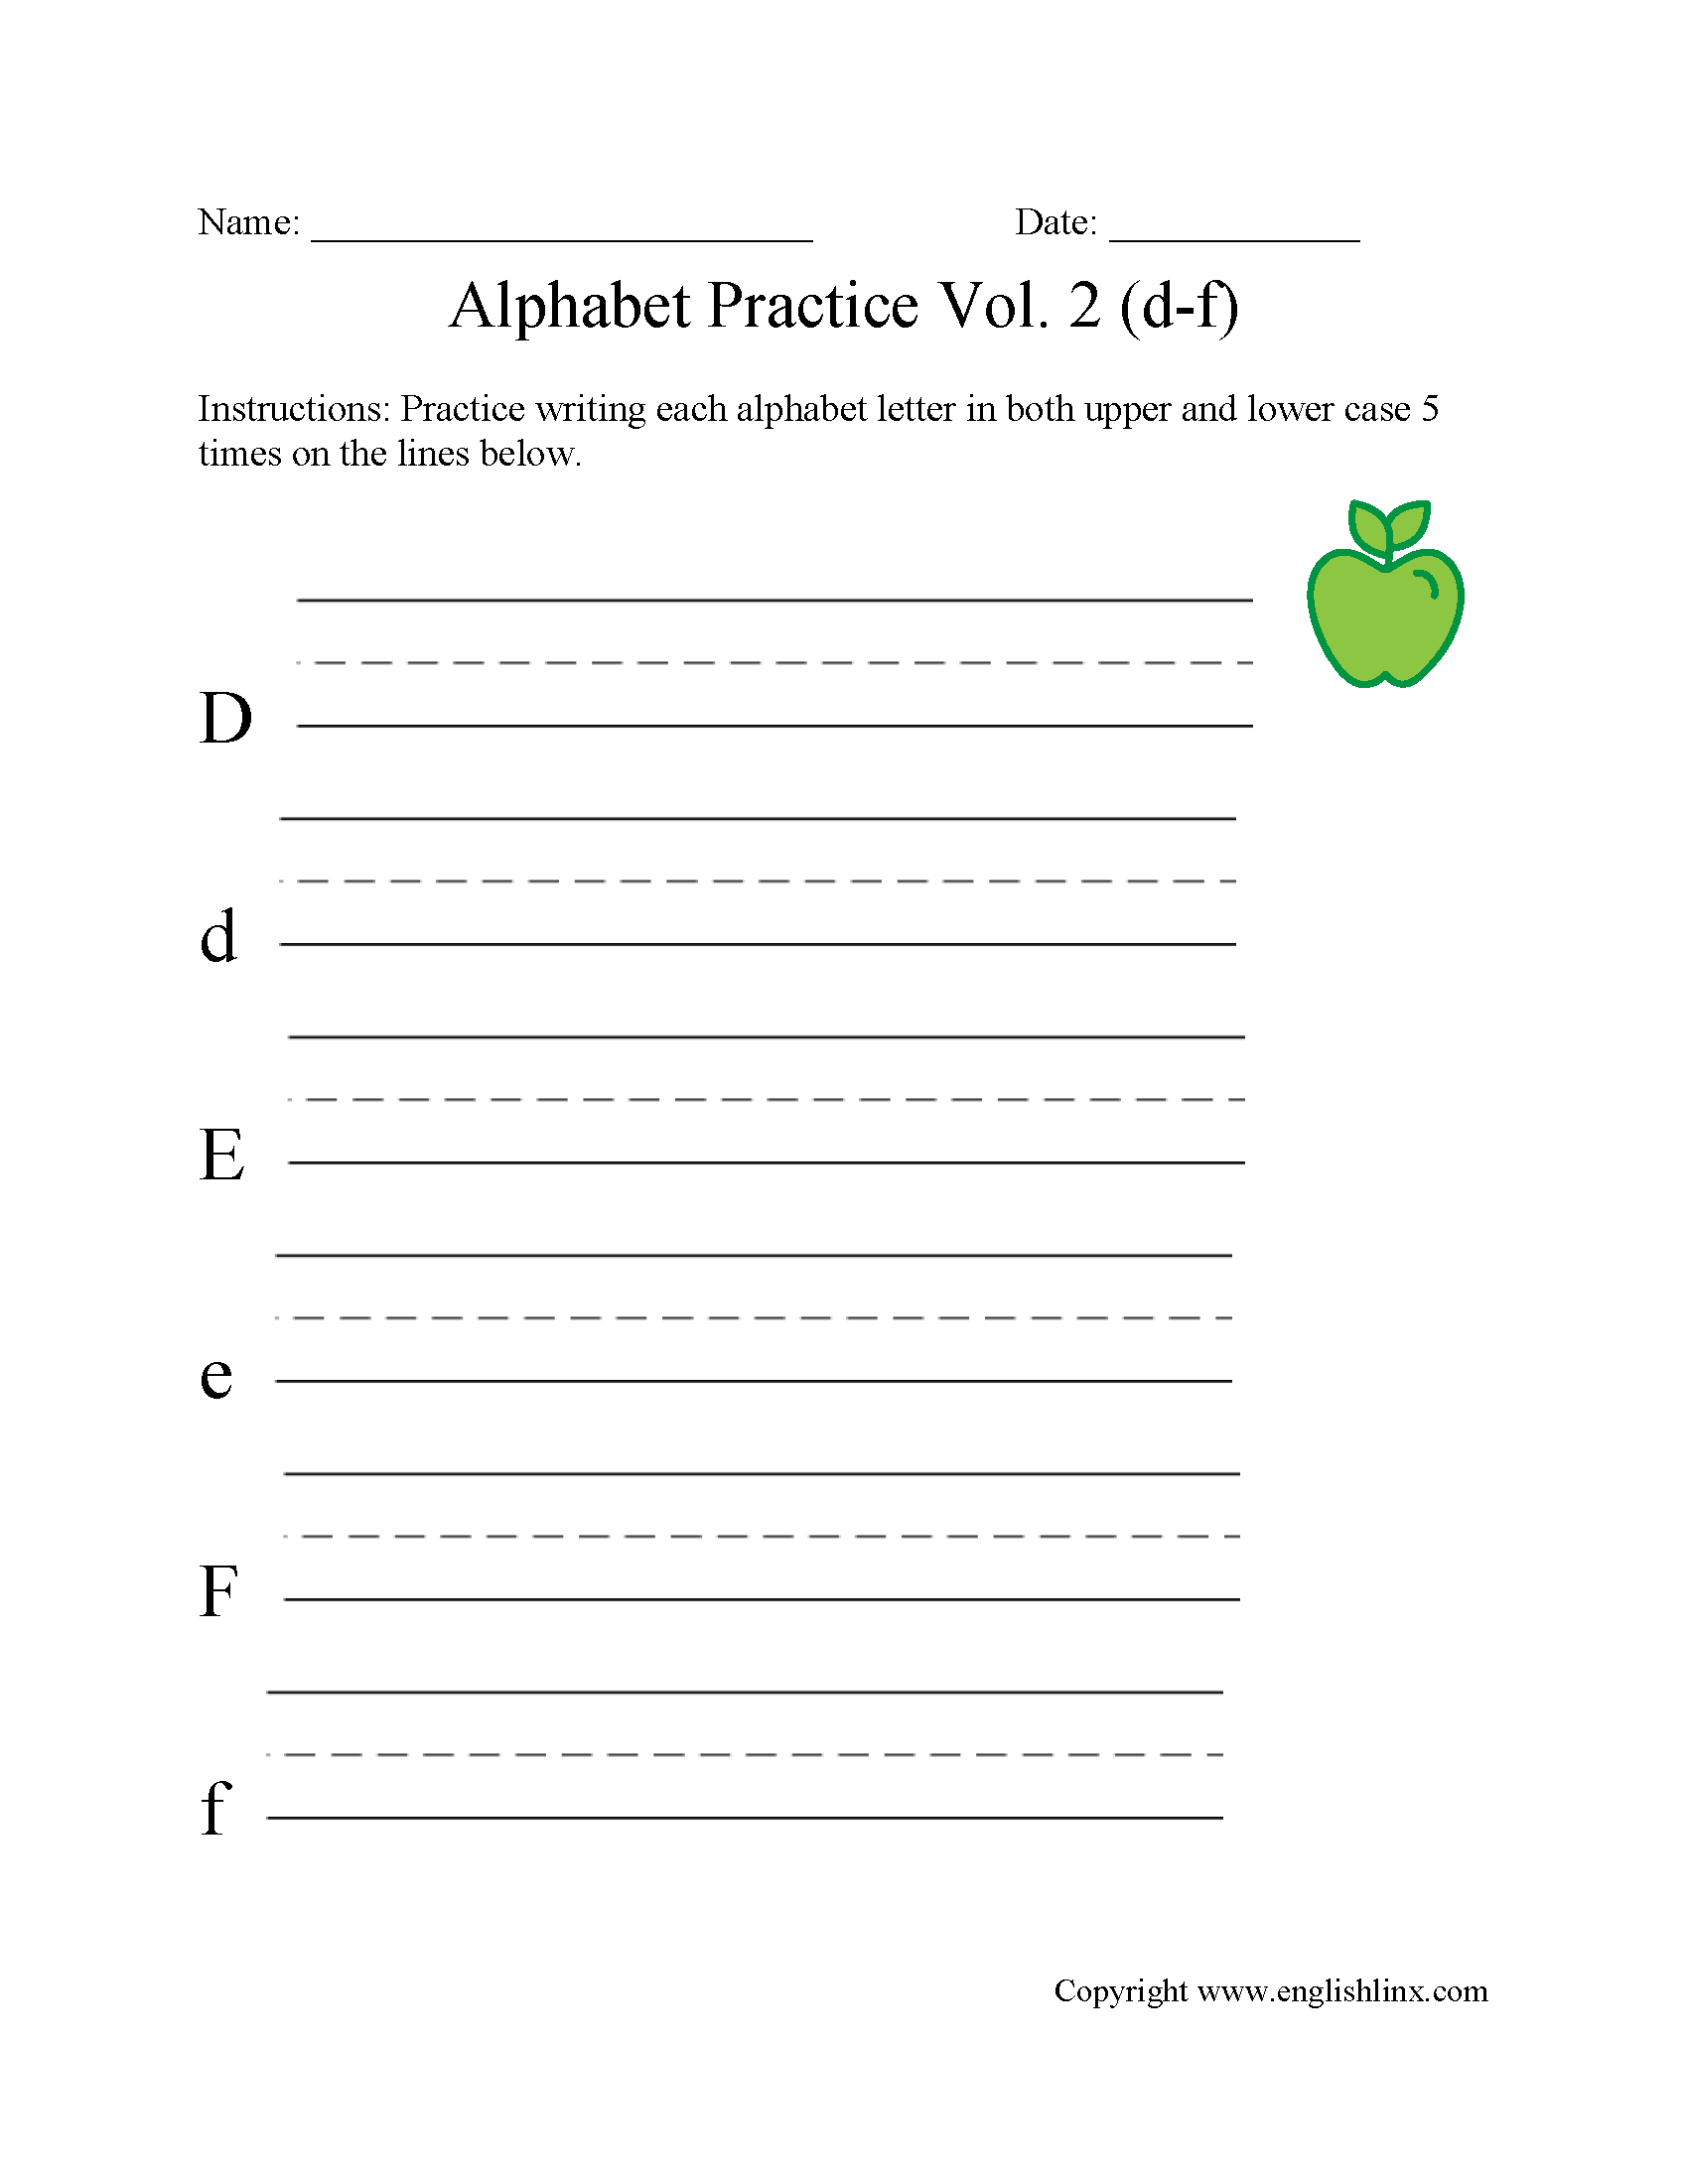 D to F Writing Alphabet Worksheet